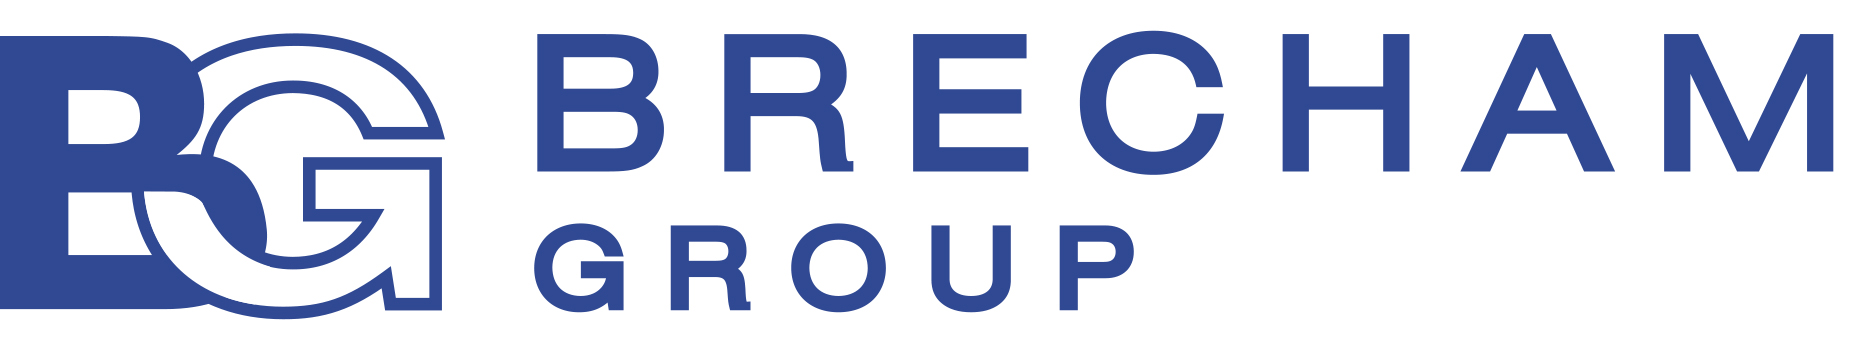 BrechamGroup